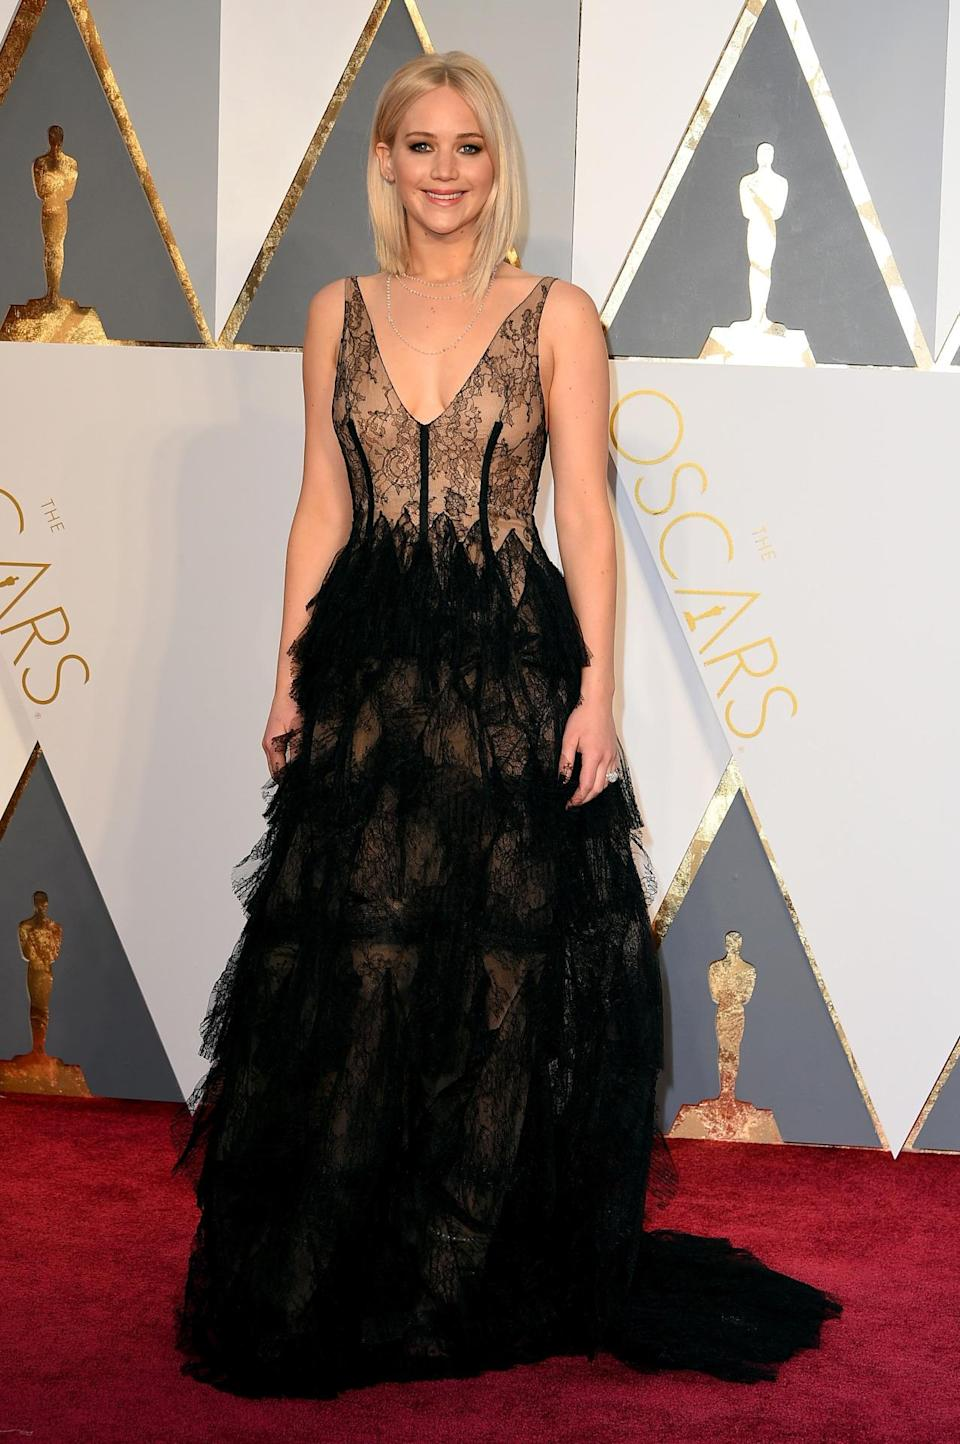 <p>It may seem as if Jennifer Lawrence has been walking the red carpet forever, but the Oscar-winning actress (and nominee this year for<i> Joy</i>) is still just 25 years old. Despite her ongoing contract with Dior, Lawrence continues to surprise us with her dress choices, like this almost Gothic layered custom Dior gown with illusion top. <i>(Photo: Getty)</i></p>